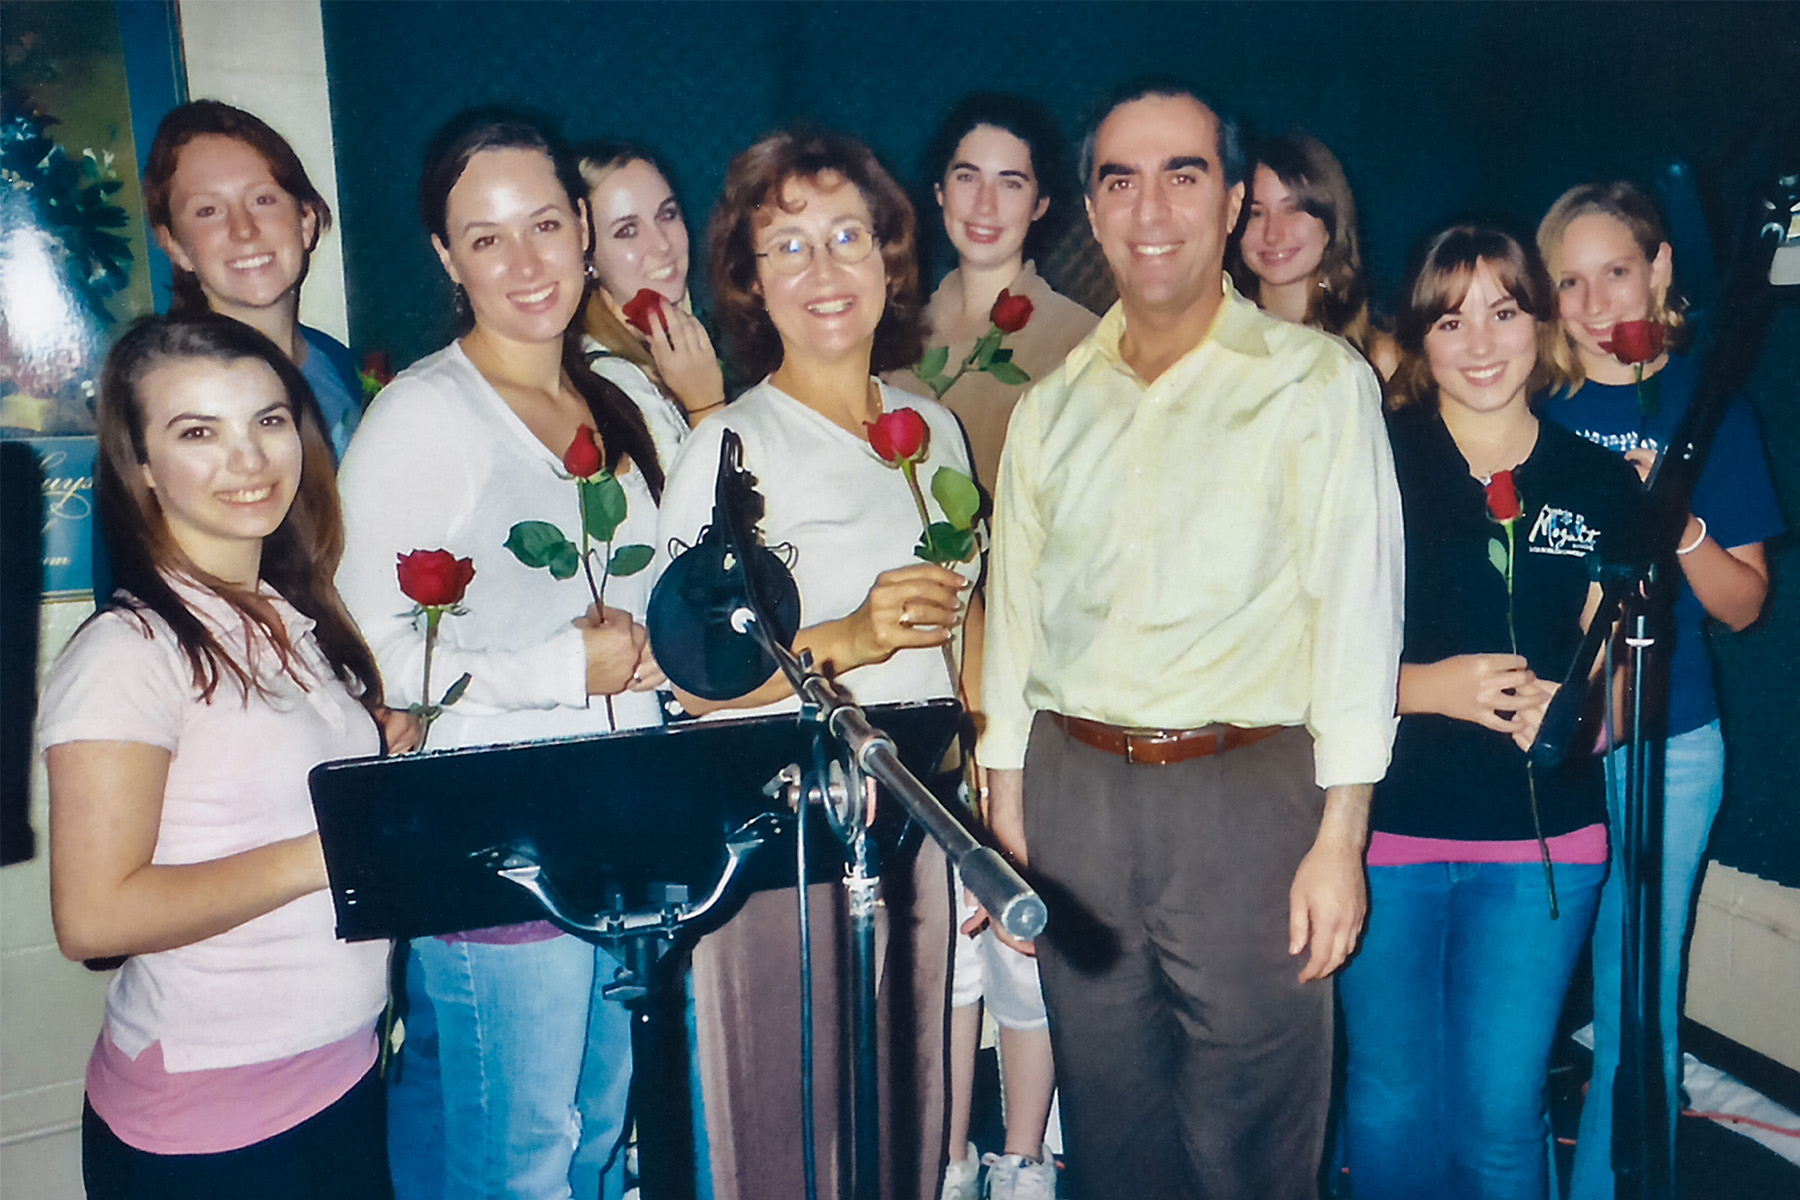 Sopranos of the Los Robles Youth Choir, after recording a work of Ludwig Tuman (center)